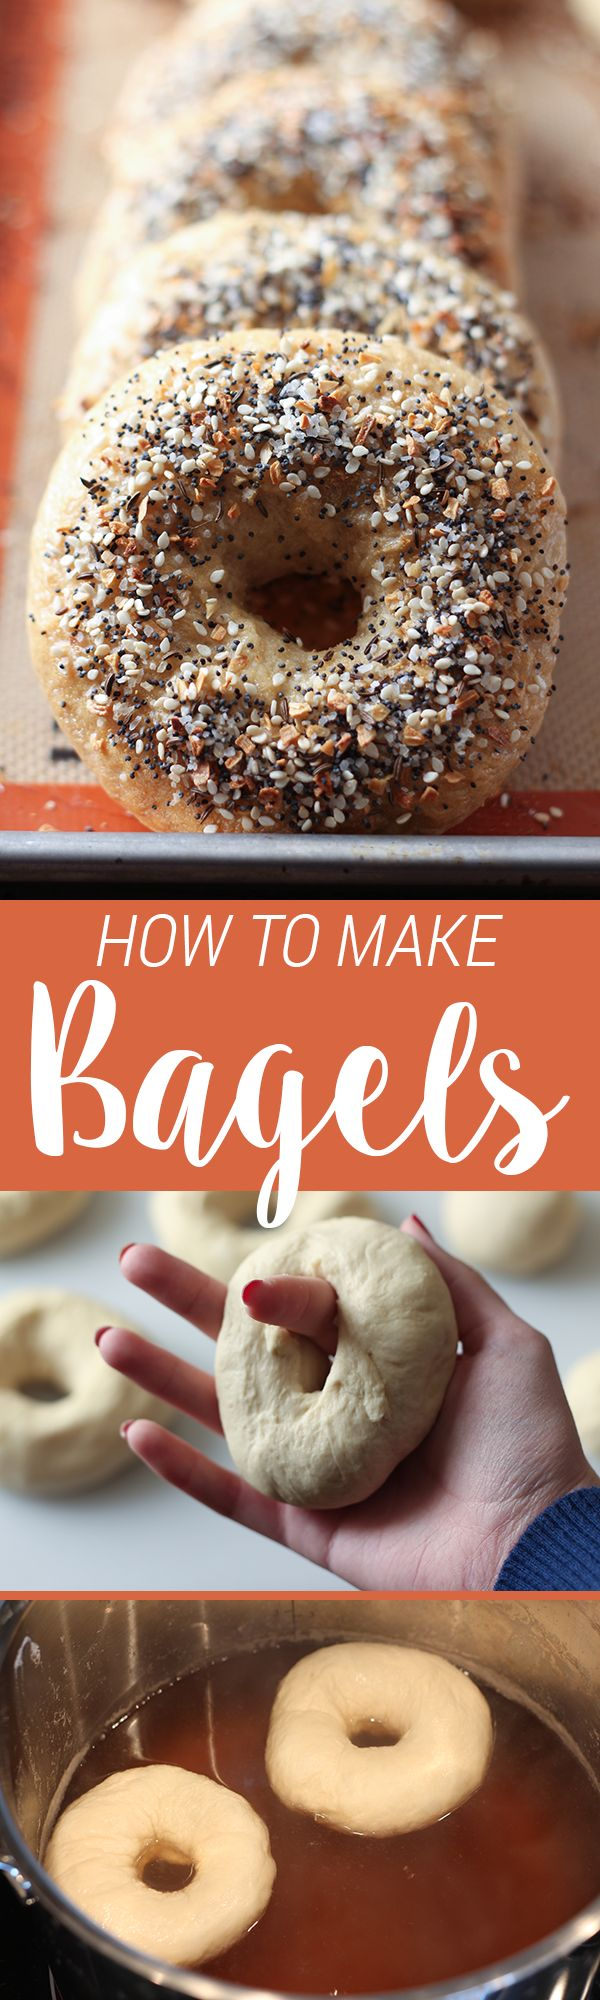 So much better than store-bought! Learn how to make PERFECT chewy bagels with my step-by-step video. Flavor customization options included!